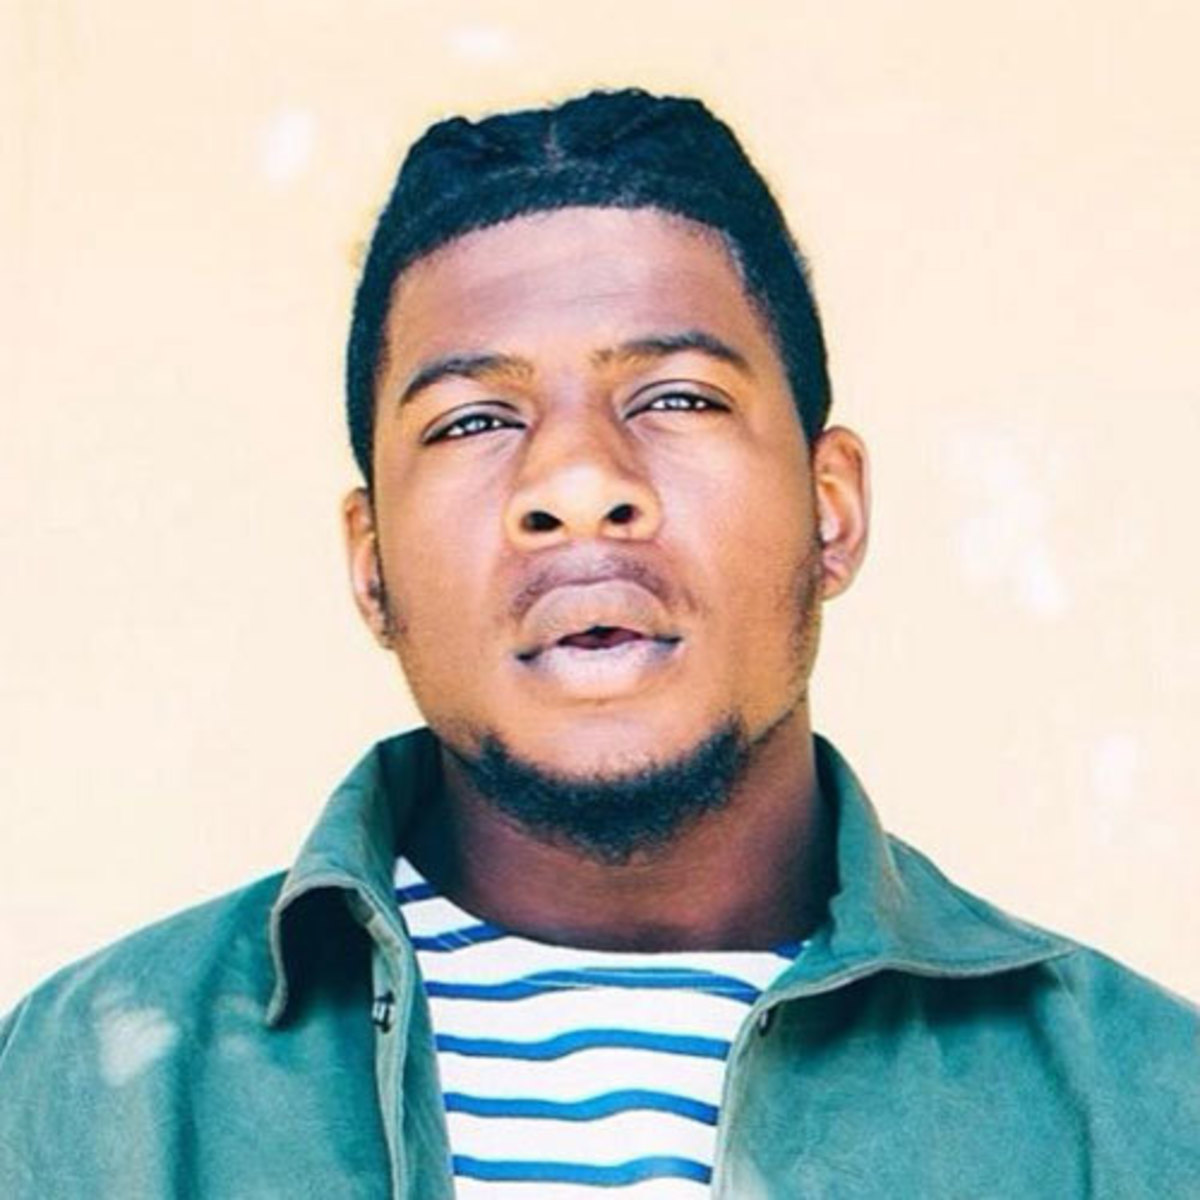 mick-jenkins-new-album.jpg